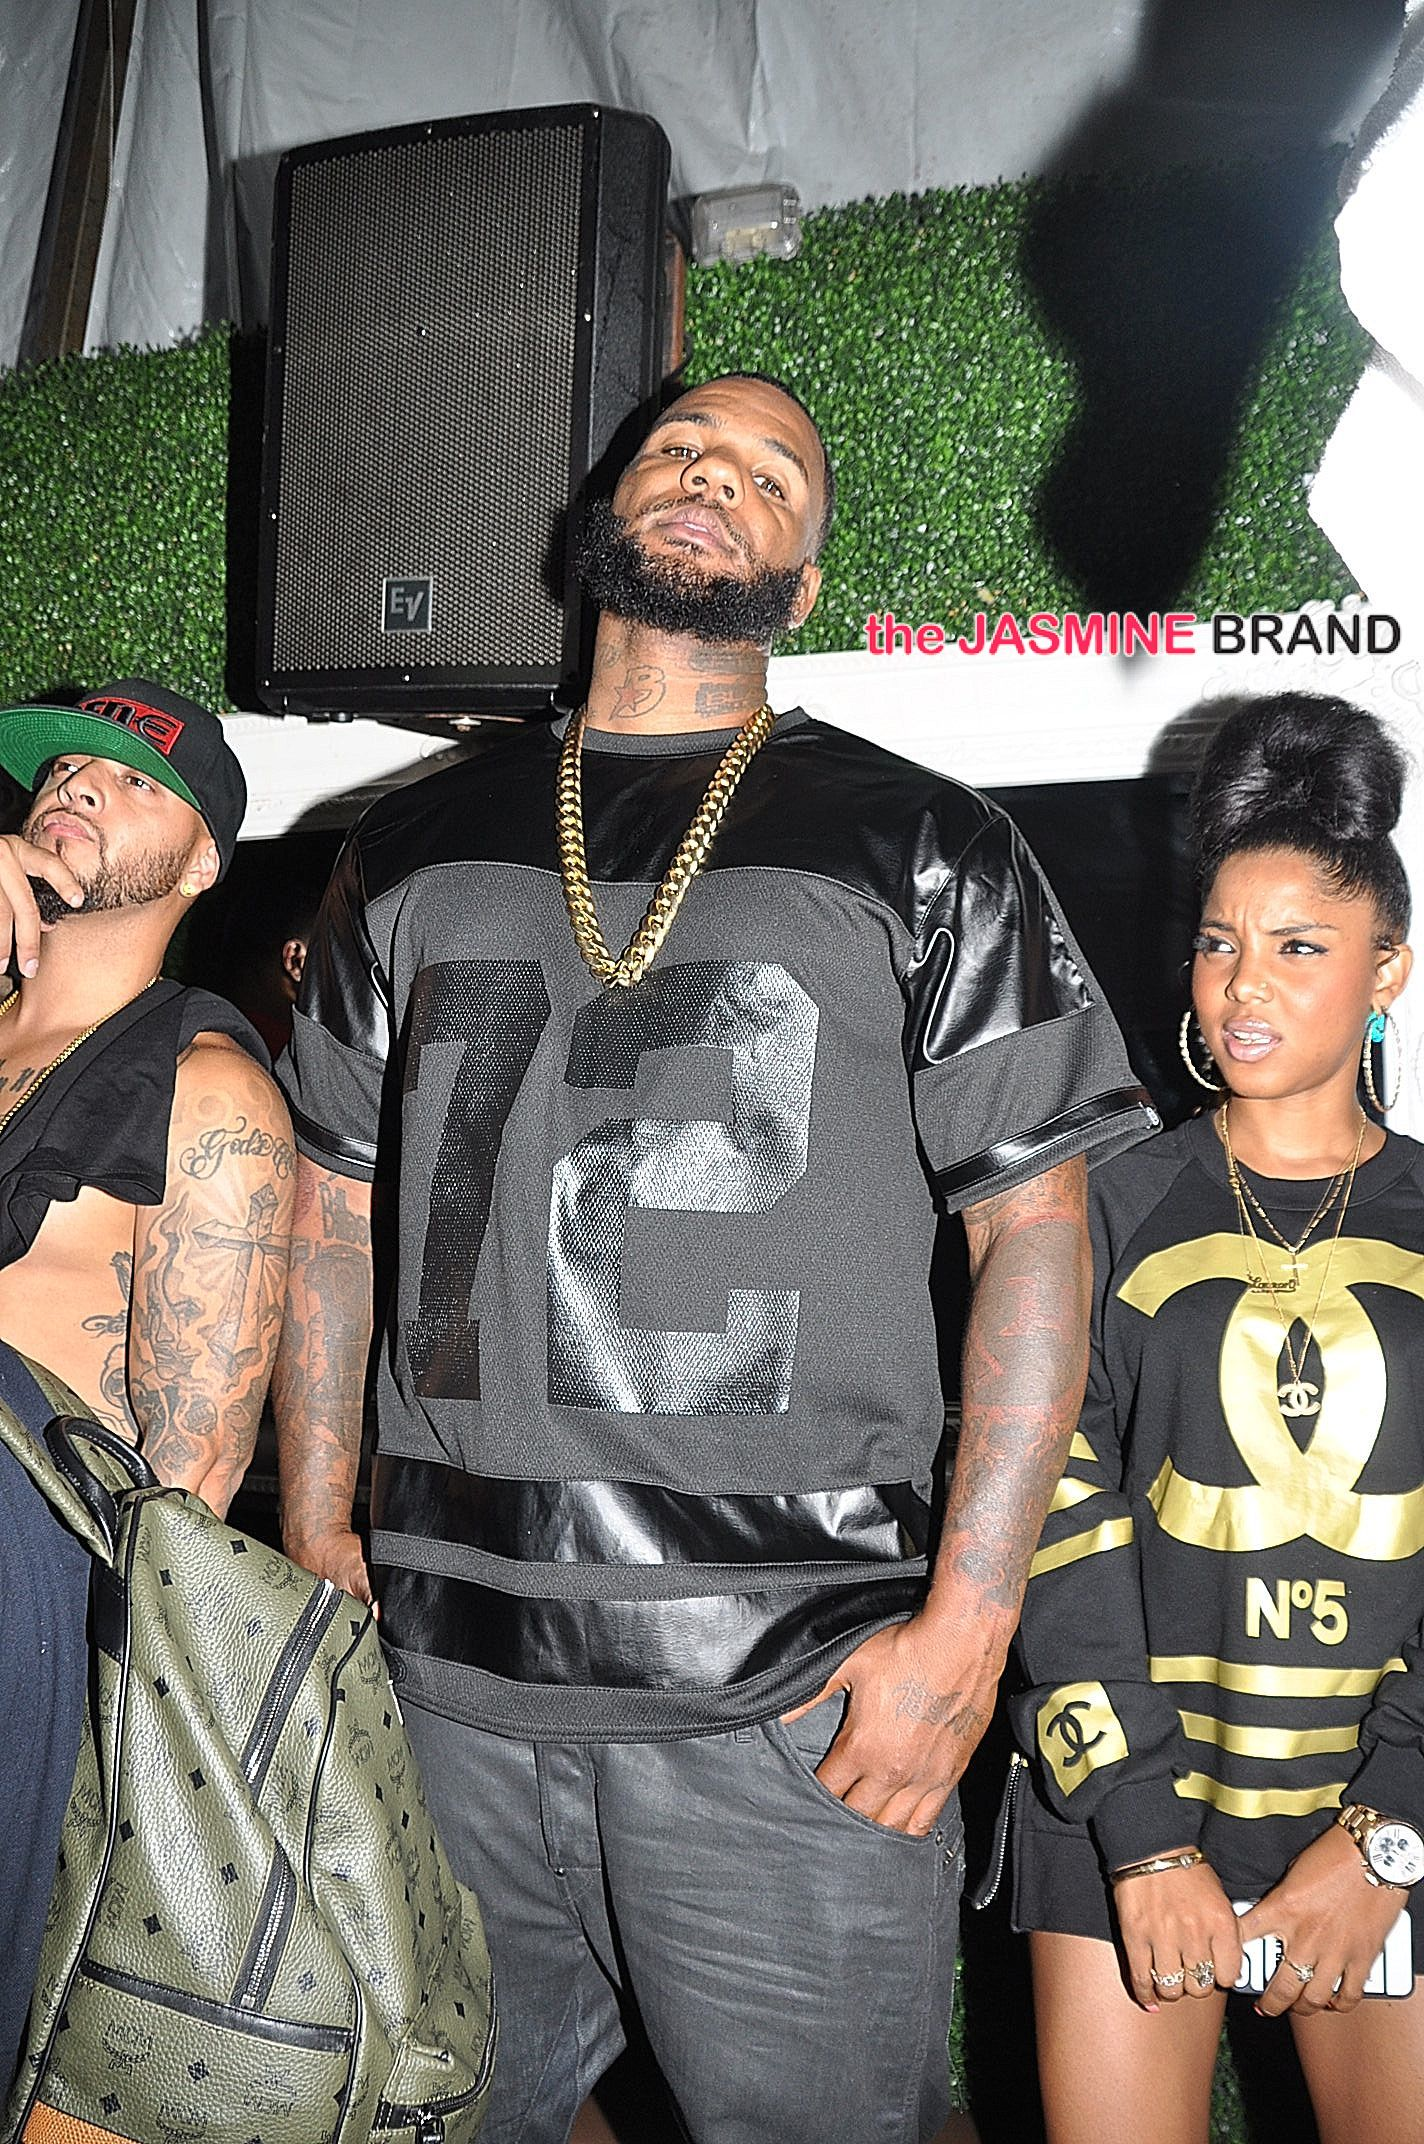 assistant lolo rapper the game visits dc rose bar the jasmine brand